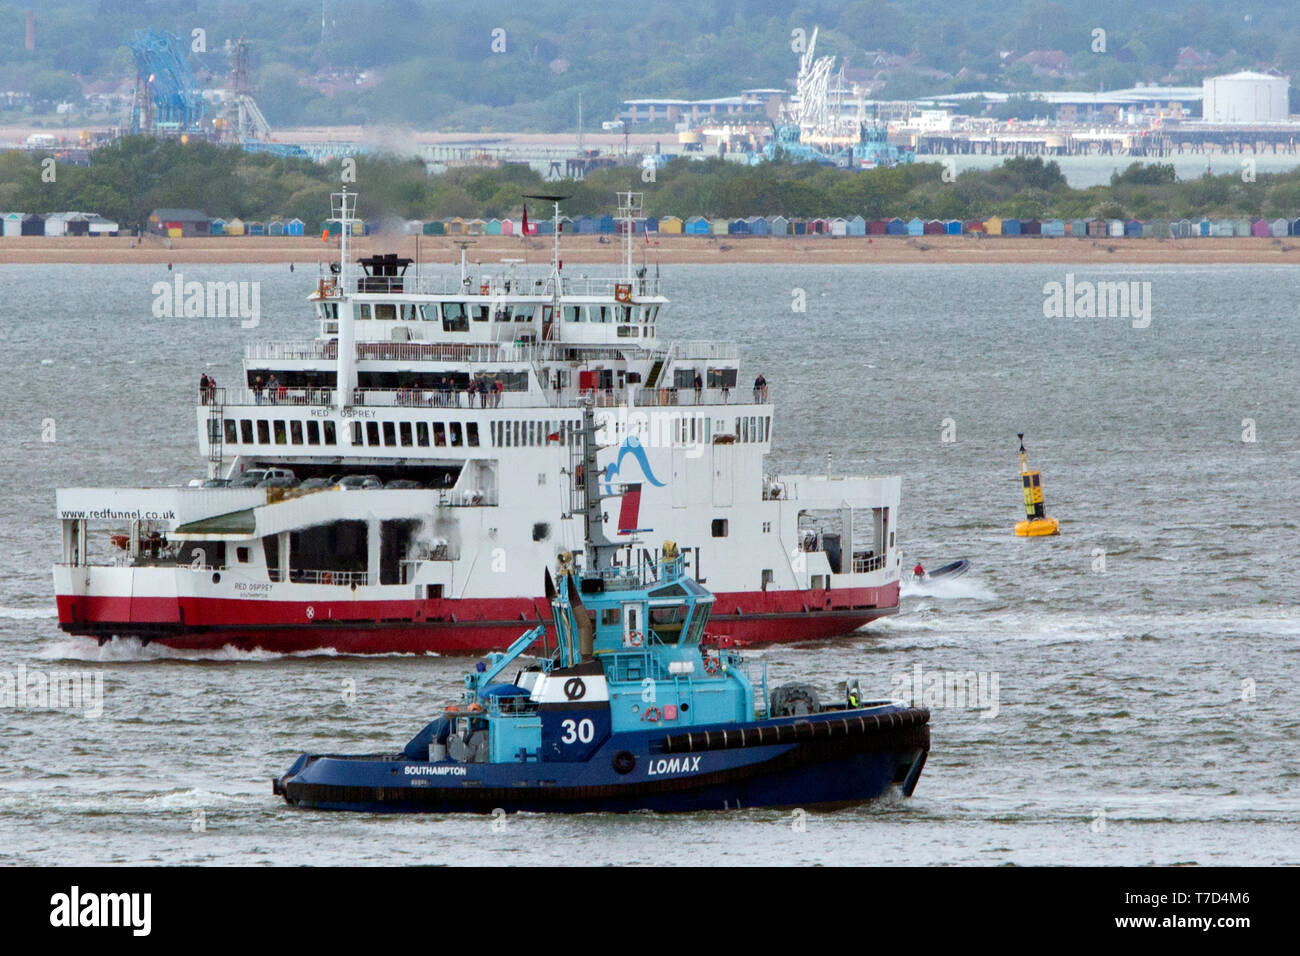 towing,tow,services,pulled,sideways,hawser,cable,tractor,schneider,power,system,Voith tractor tug,Southampton,Fawley,Oil Refinery,The Solent, Cowes, i - Stock Image